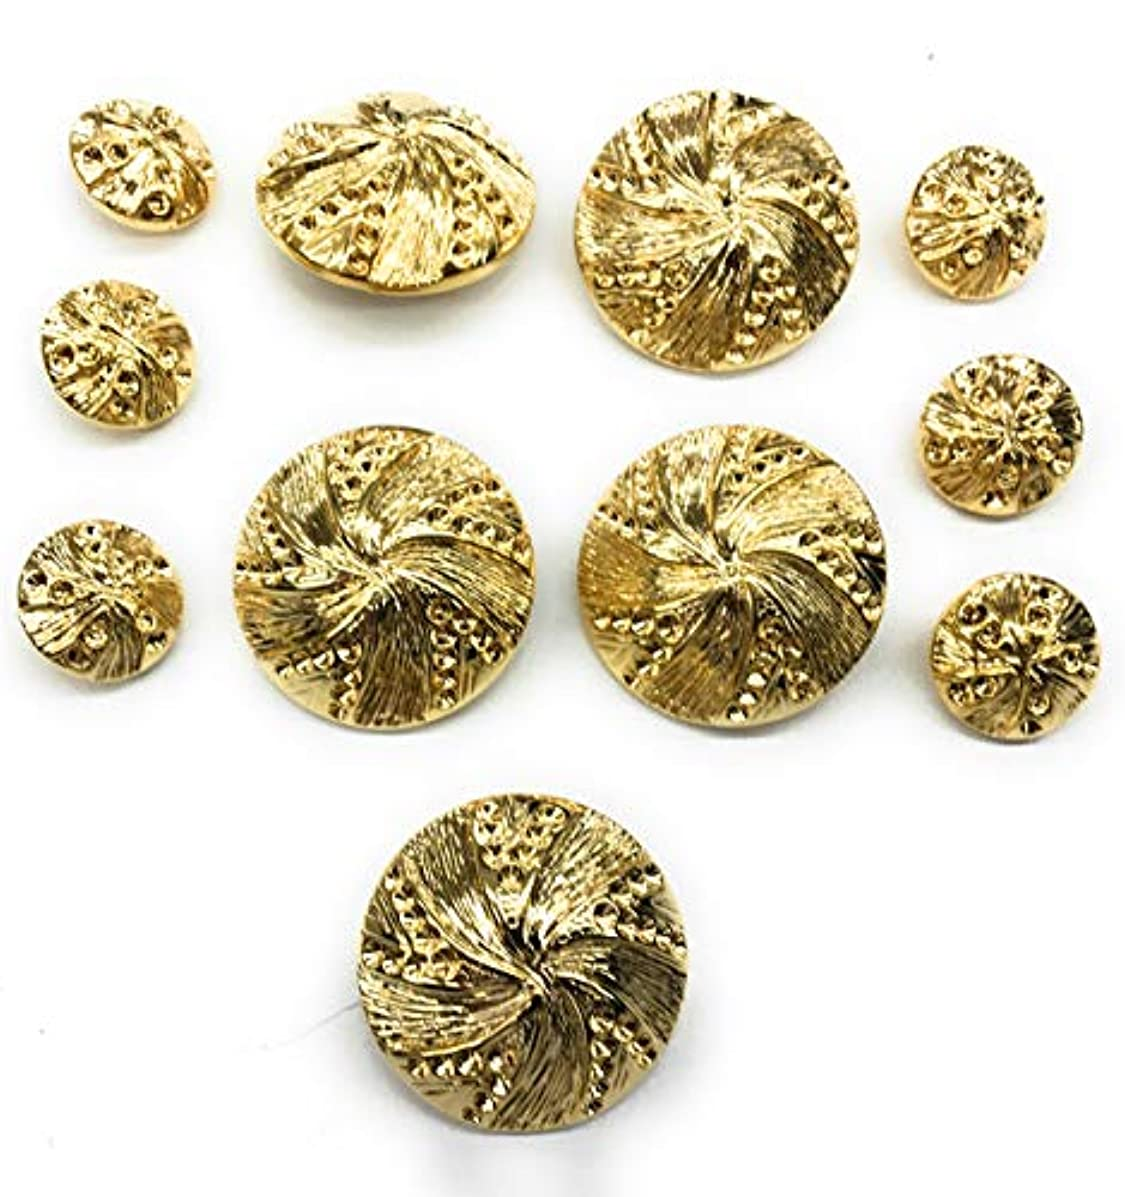 14 Kt Plated Gold Fashion Buttons Set for Dress, Blazer 11pc. (